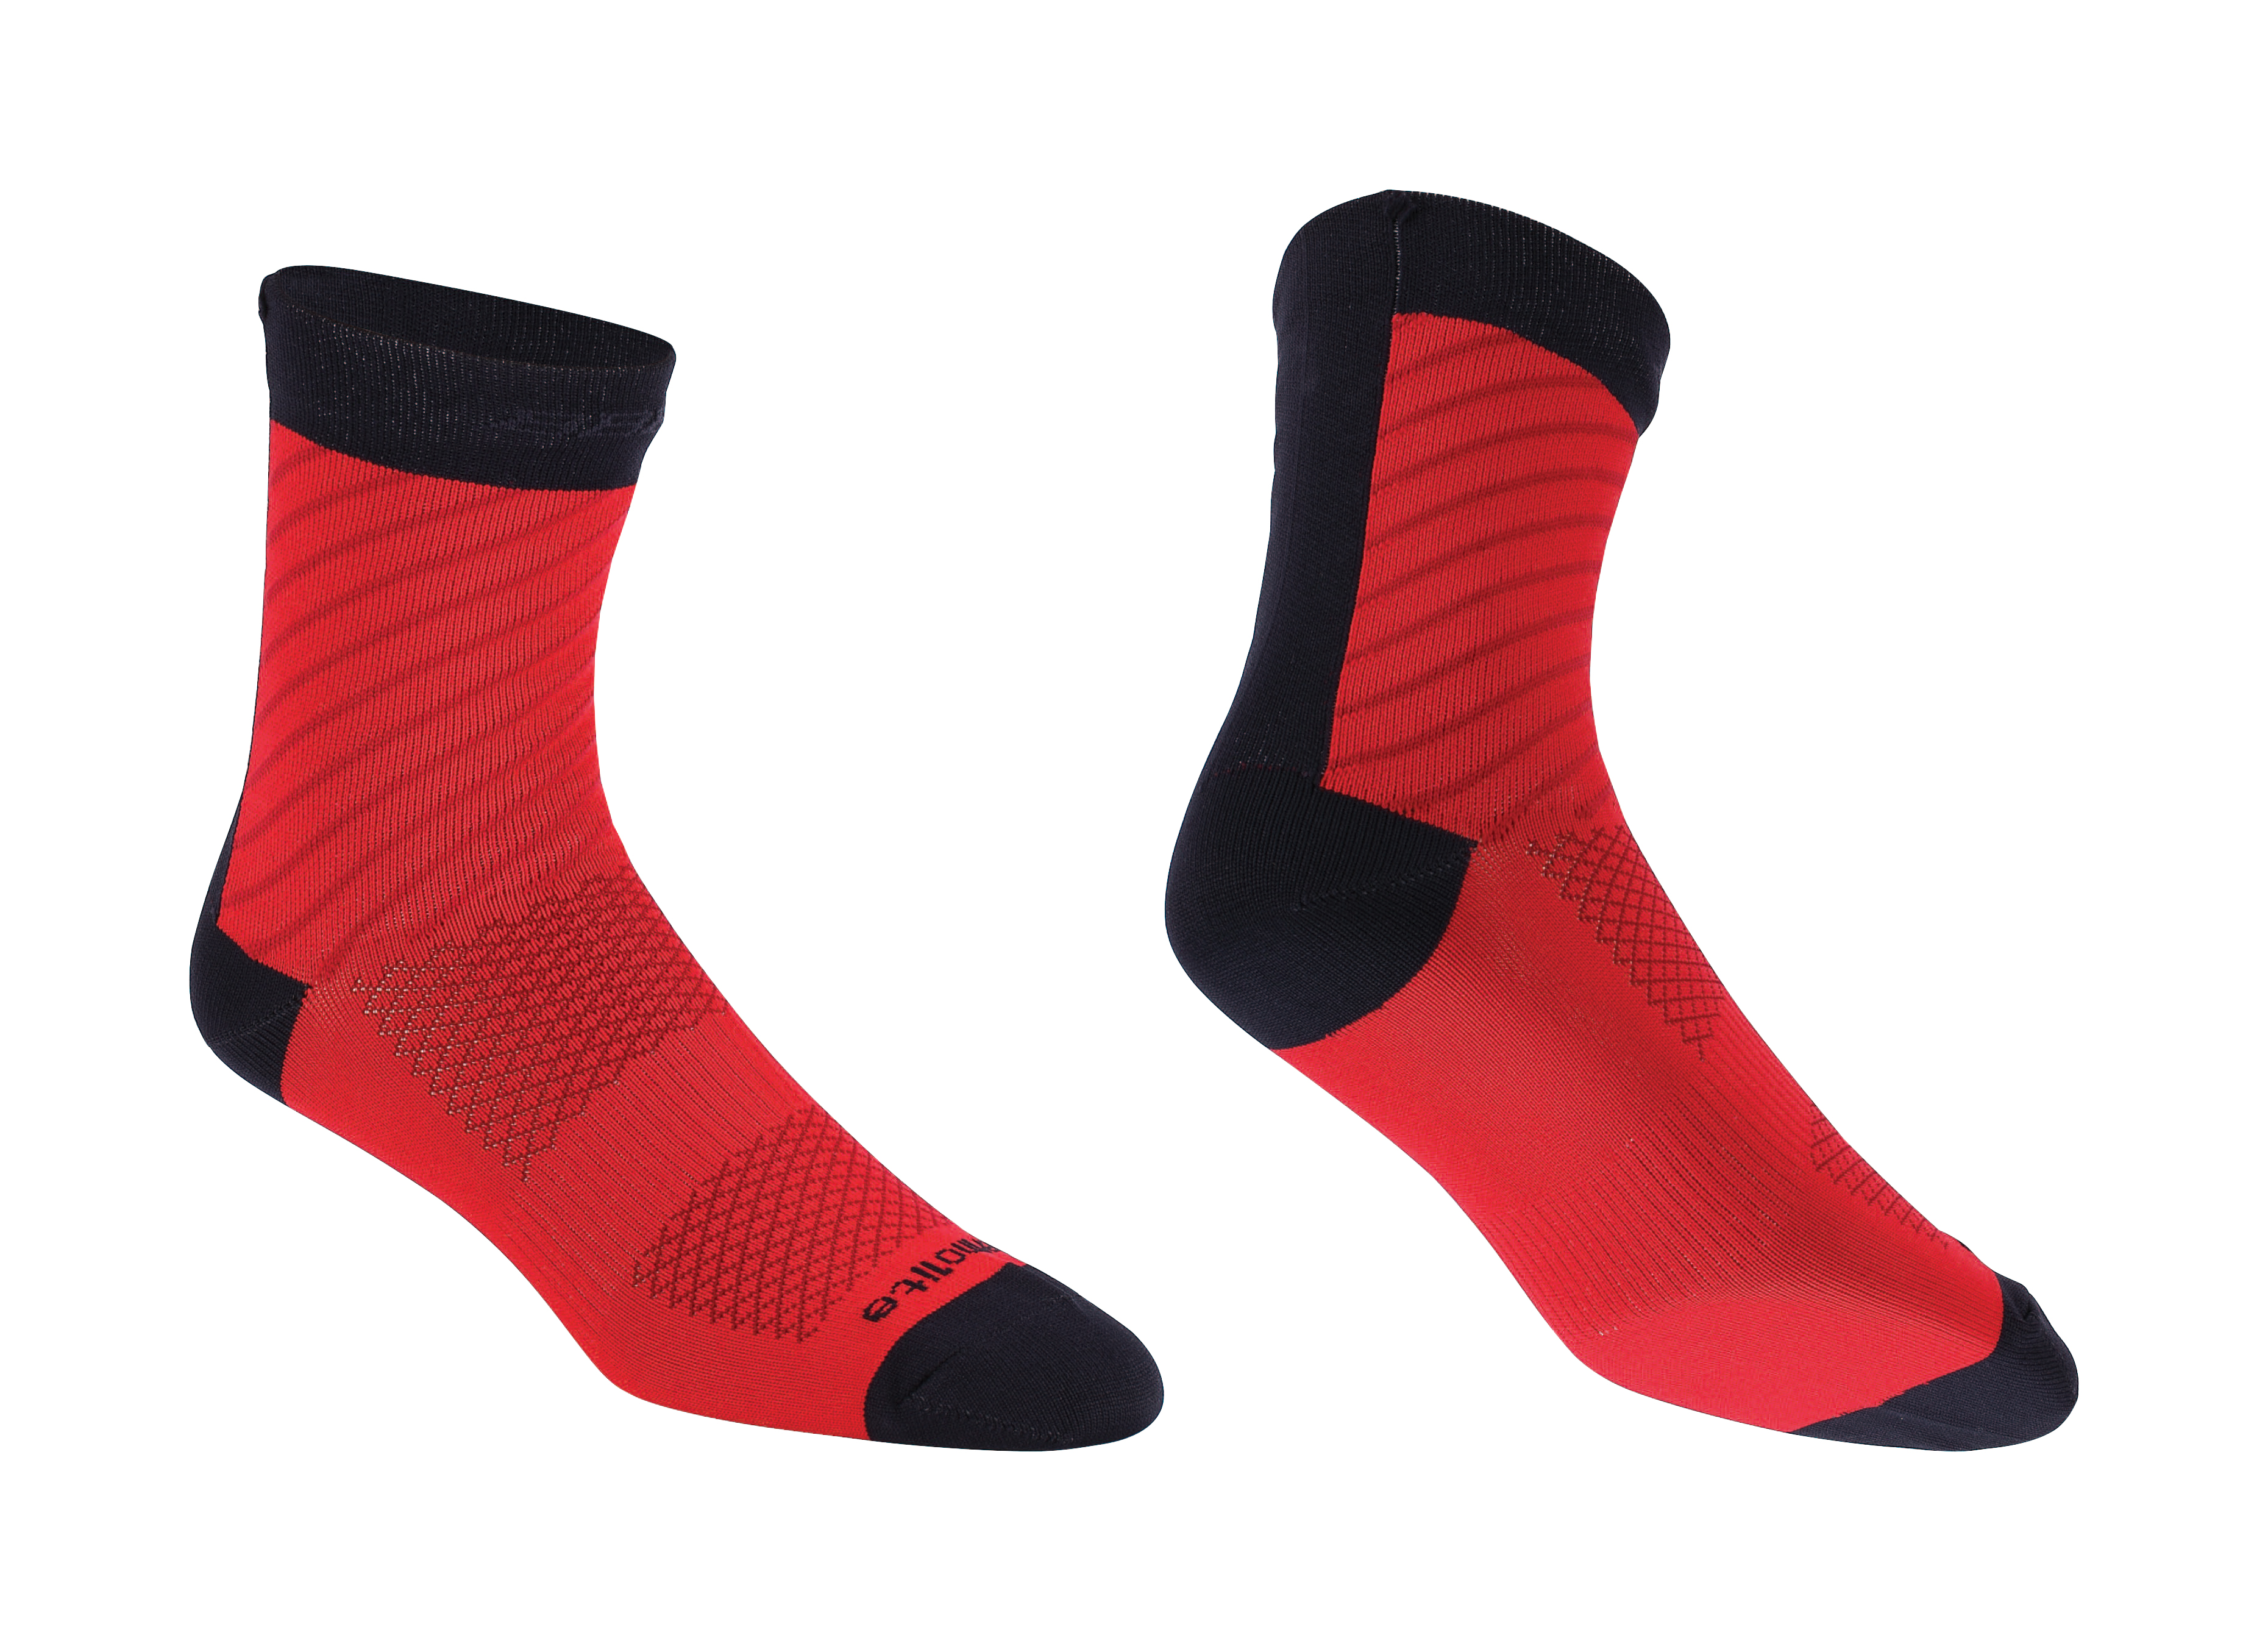 Bbb-Bso-17-Thermofeet-Socks-Red-35-38